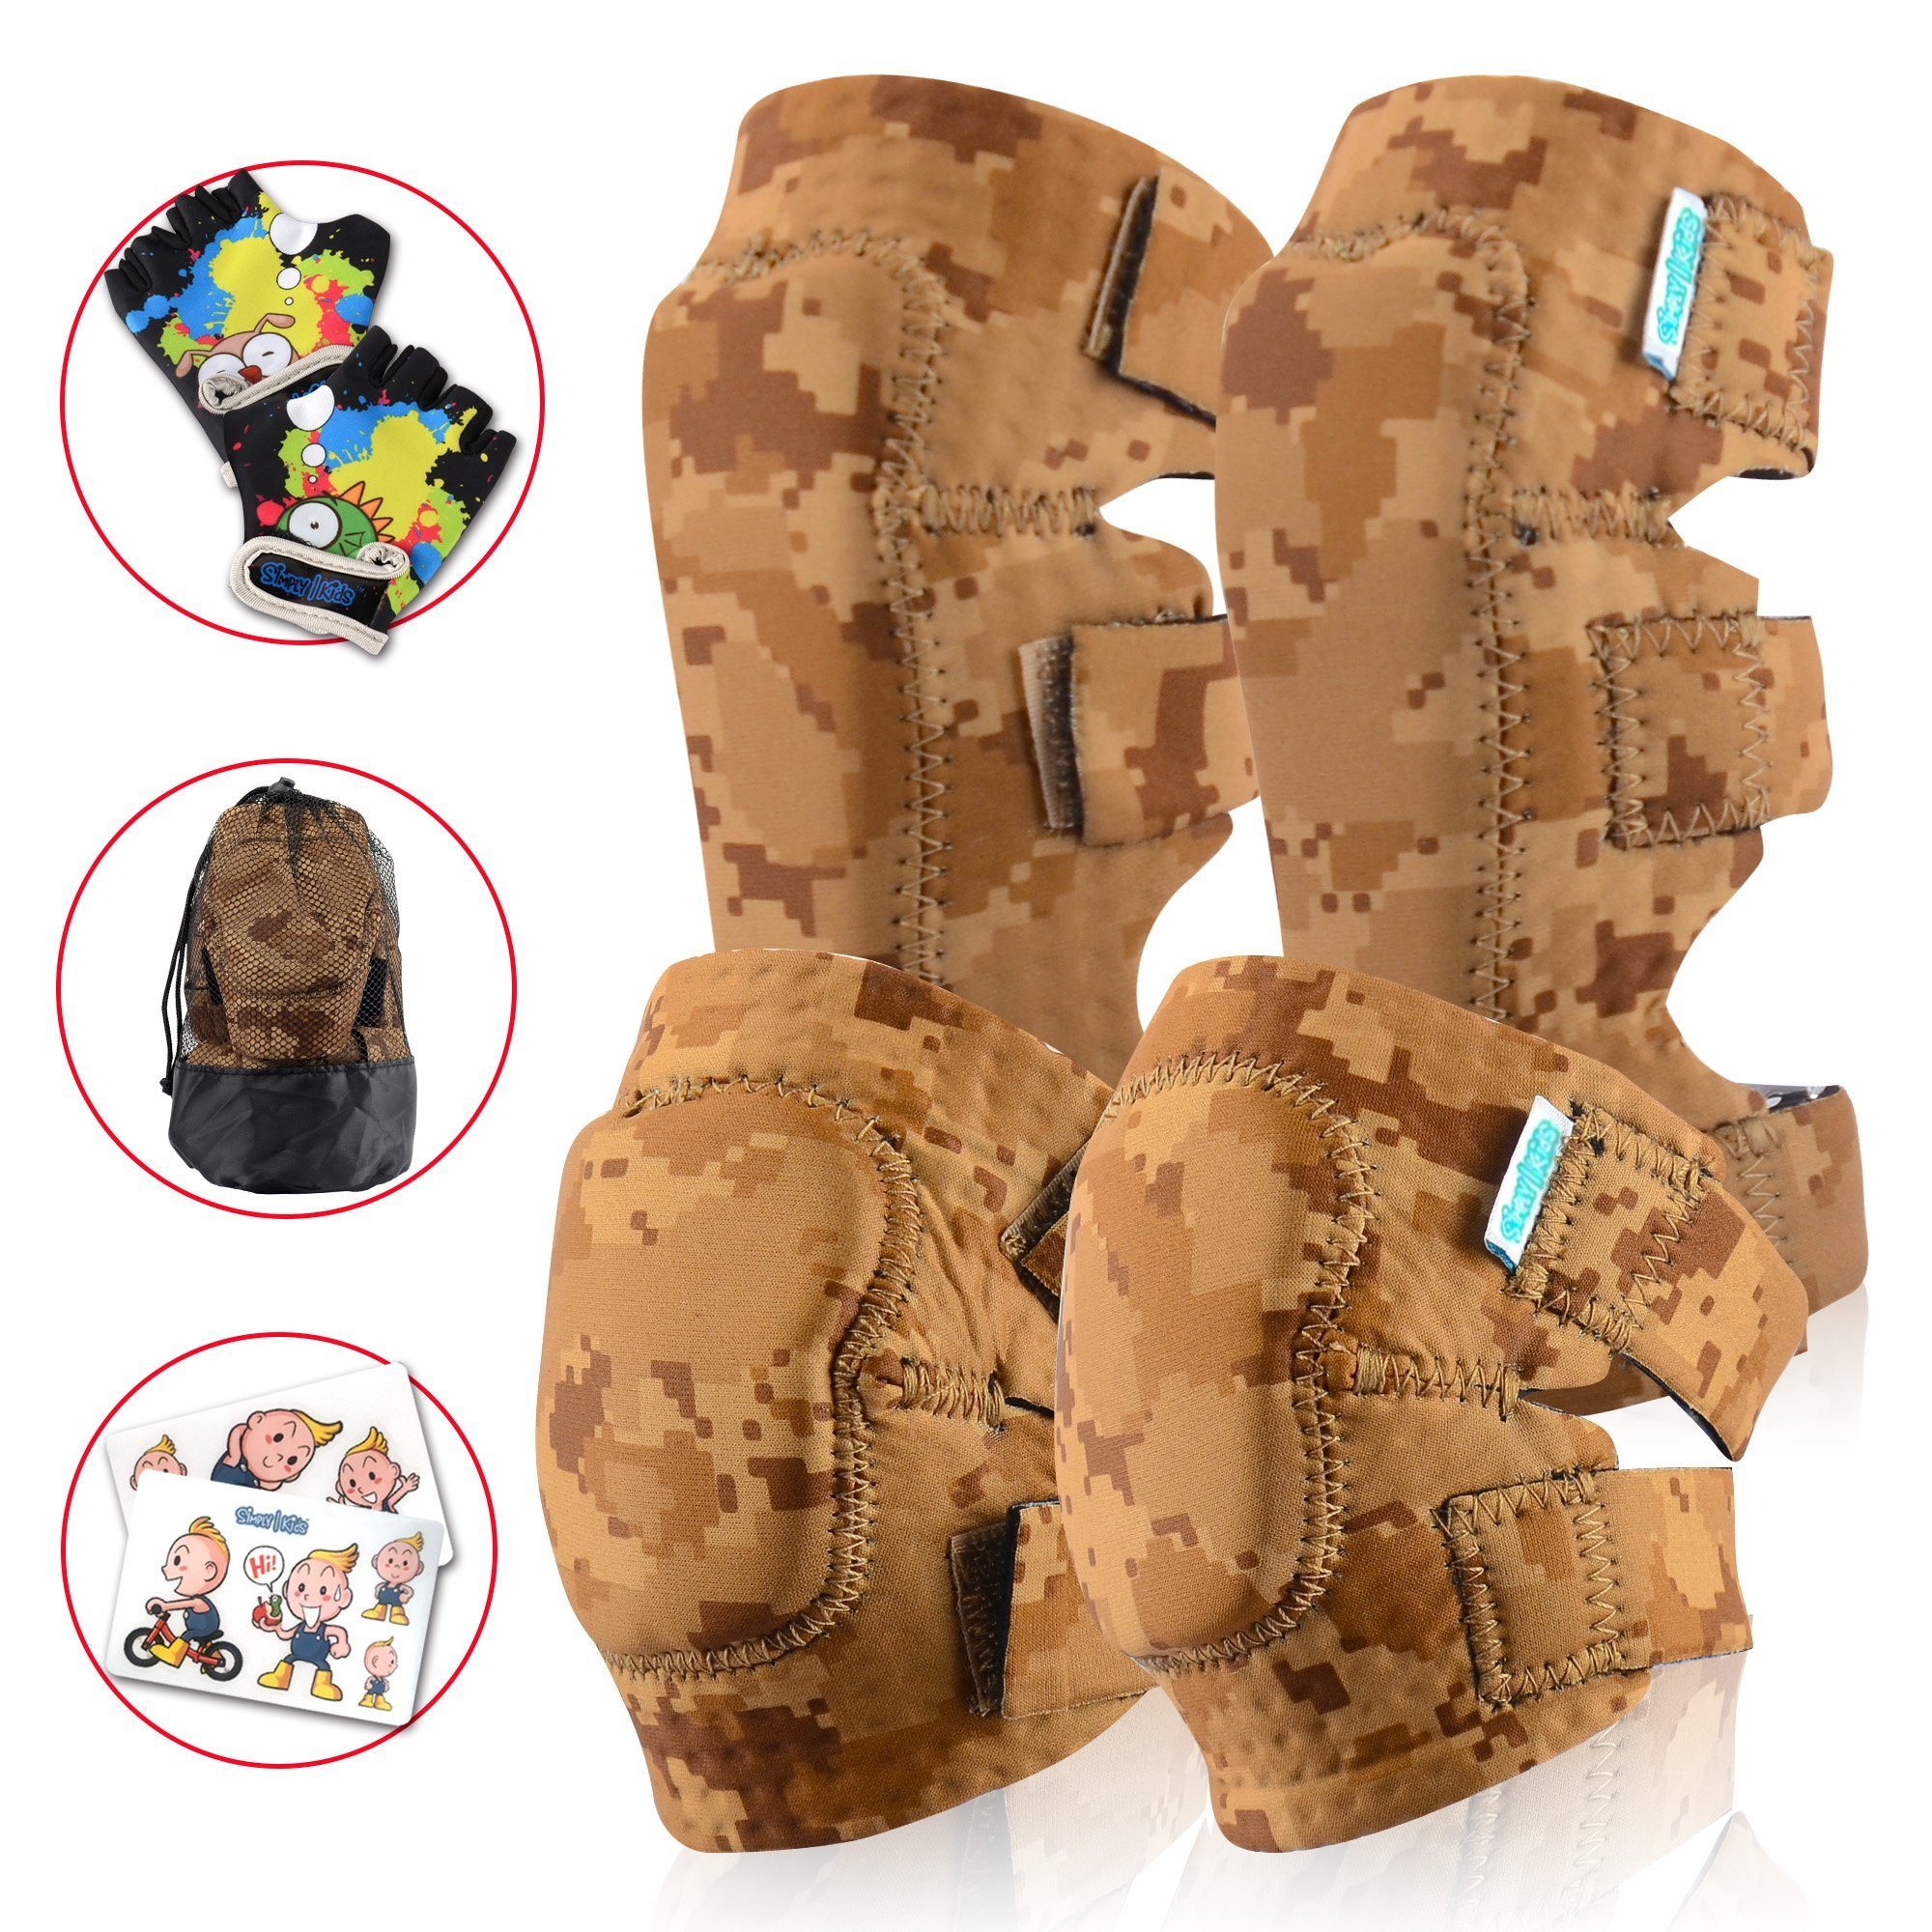 Innovative Soft Kids Knee and Elbow Pads Plus BONUS Bike Gloves | Toddler Protective Gear Set | Comfortable, Breathable & Safe | Roller-Skate, Skateboard, Rollerblade & BMX Kit w/Mesh Bag & Sticker by Simply Kids